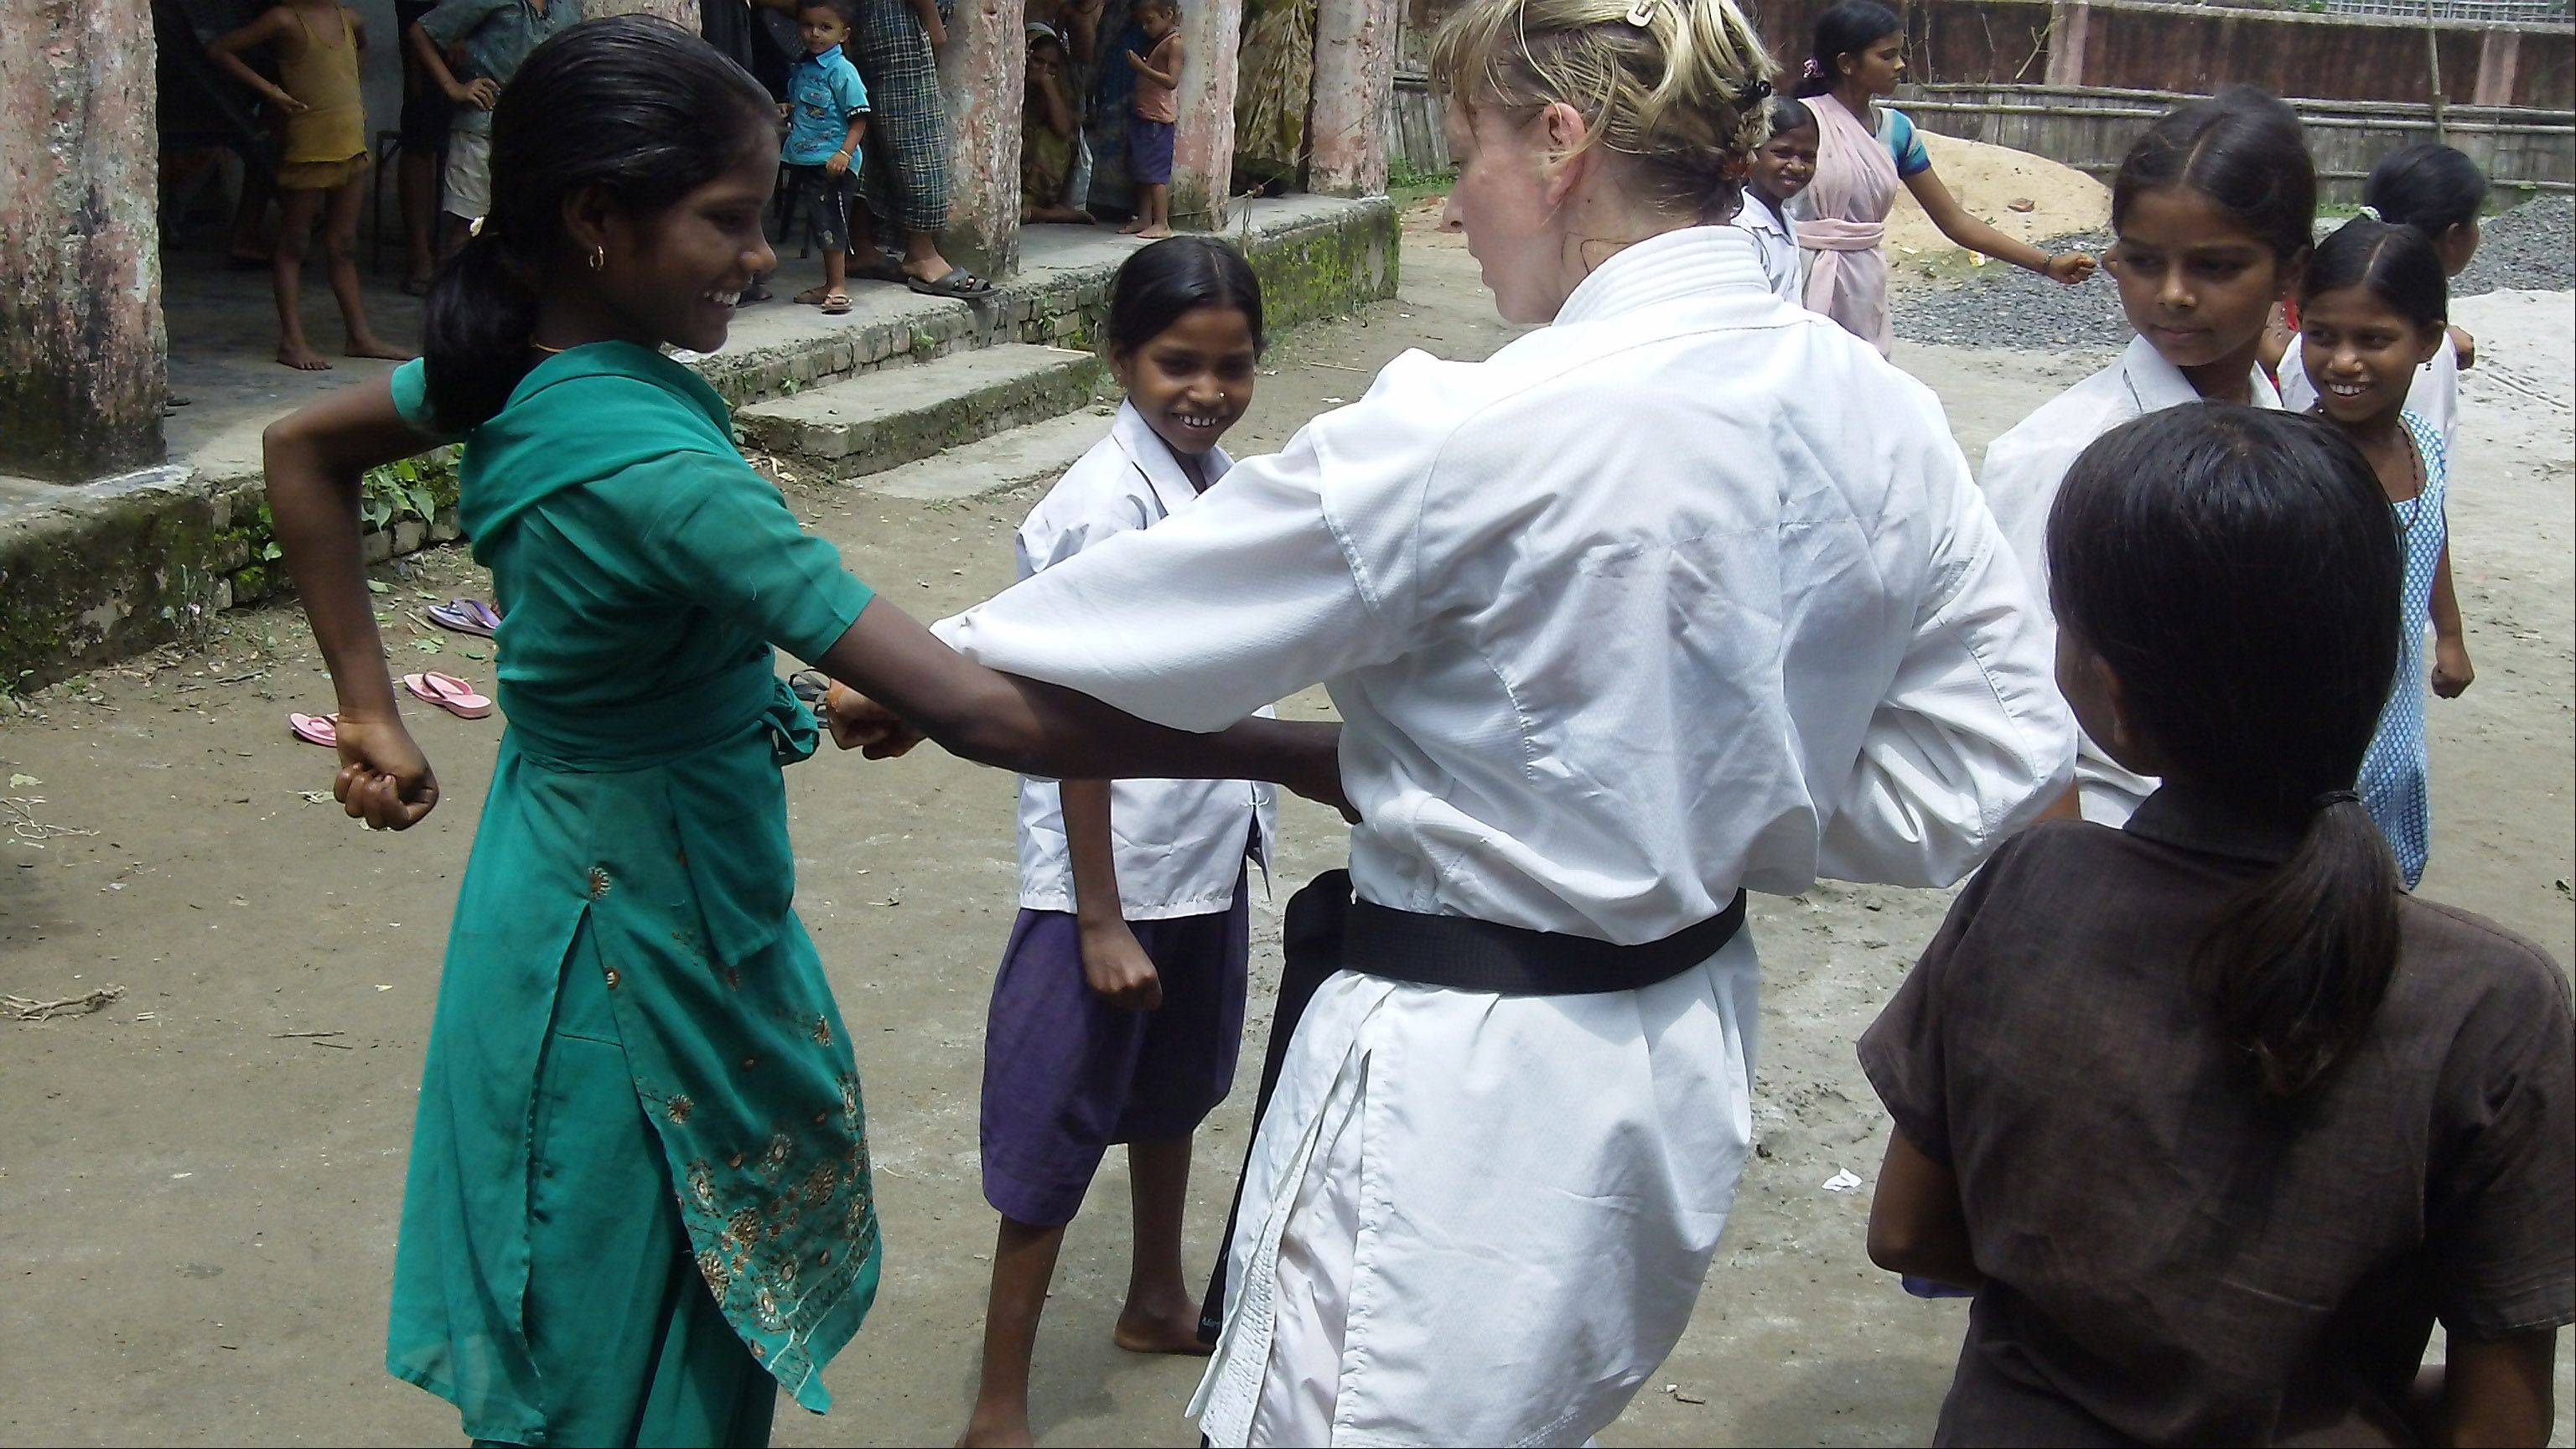 Belle Staurowsky teaches self-defense classes for girls who have been victims of -- or are at risk for -- sex trafficking through Green Tara Project, the nonprofit she founded in 2010. Here she is pictured in Babuan, in the Indian state of Bihar.